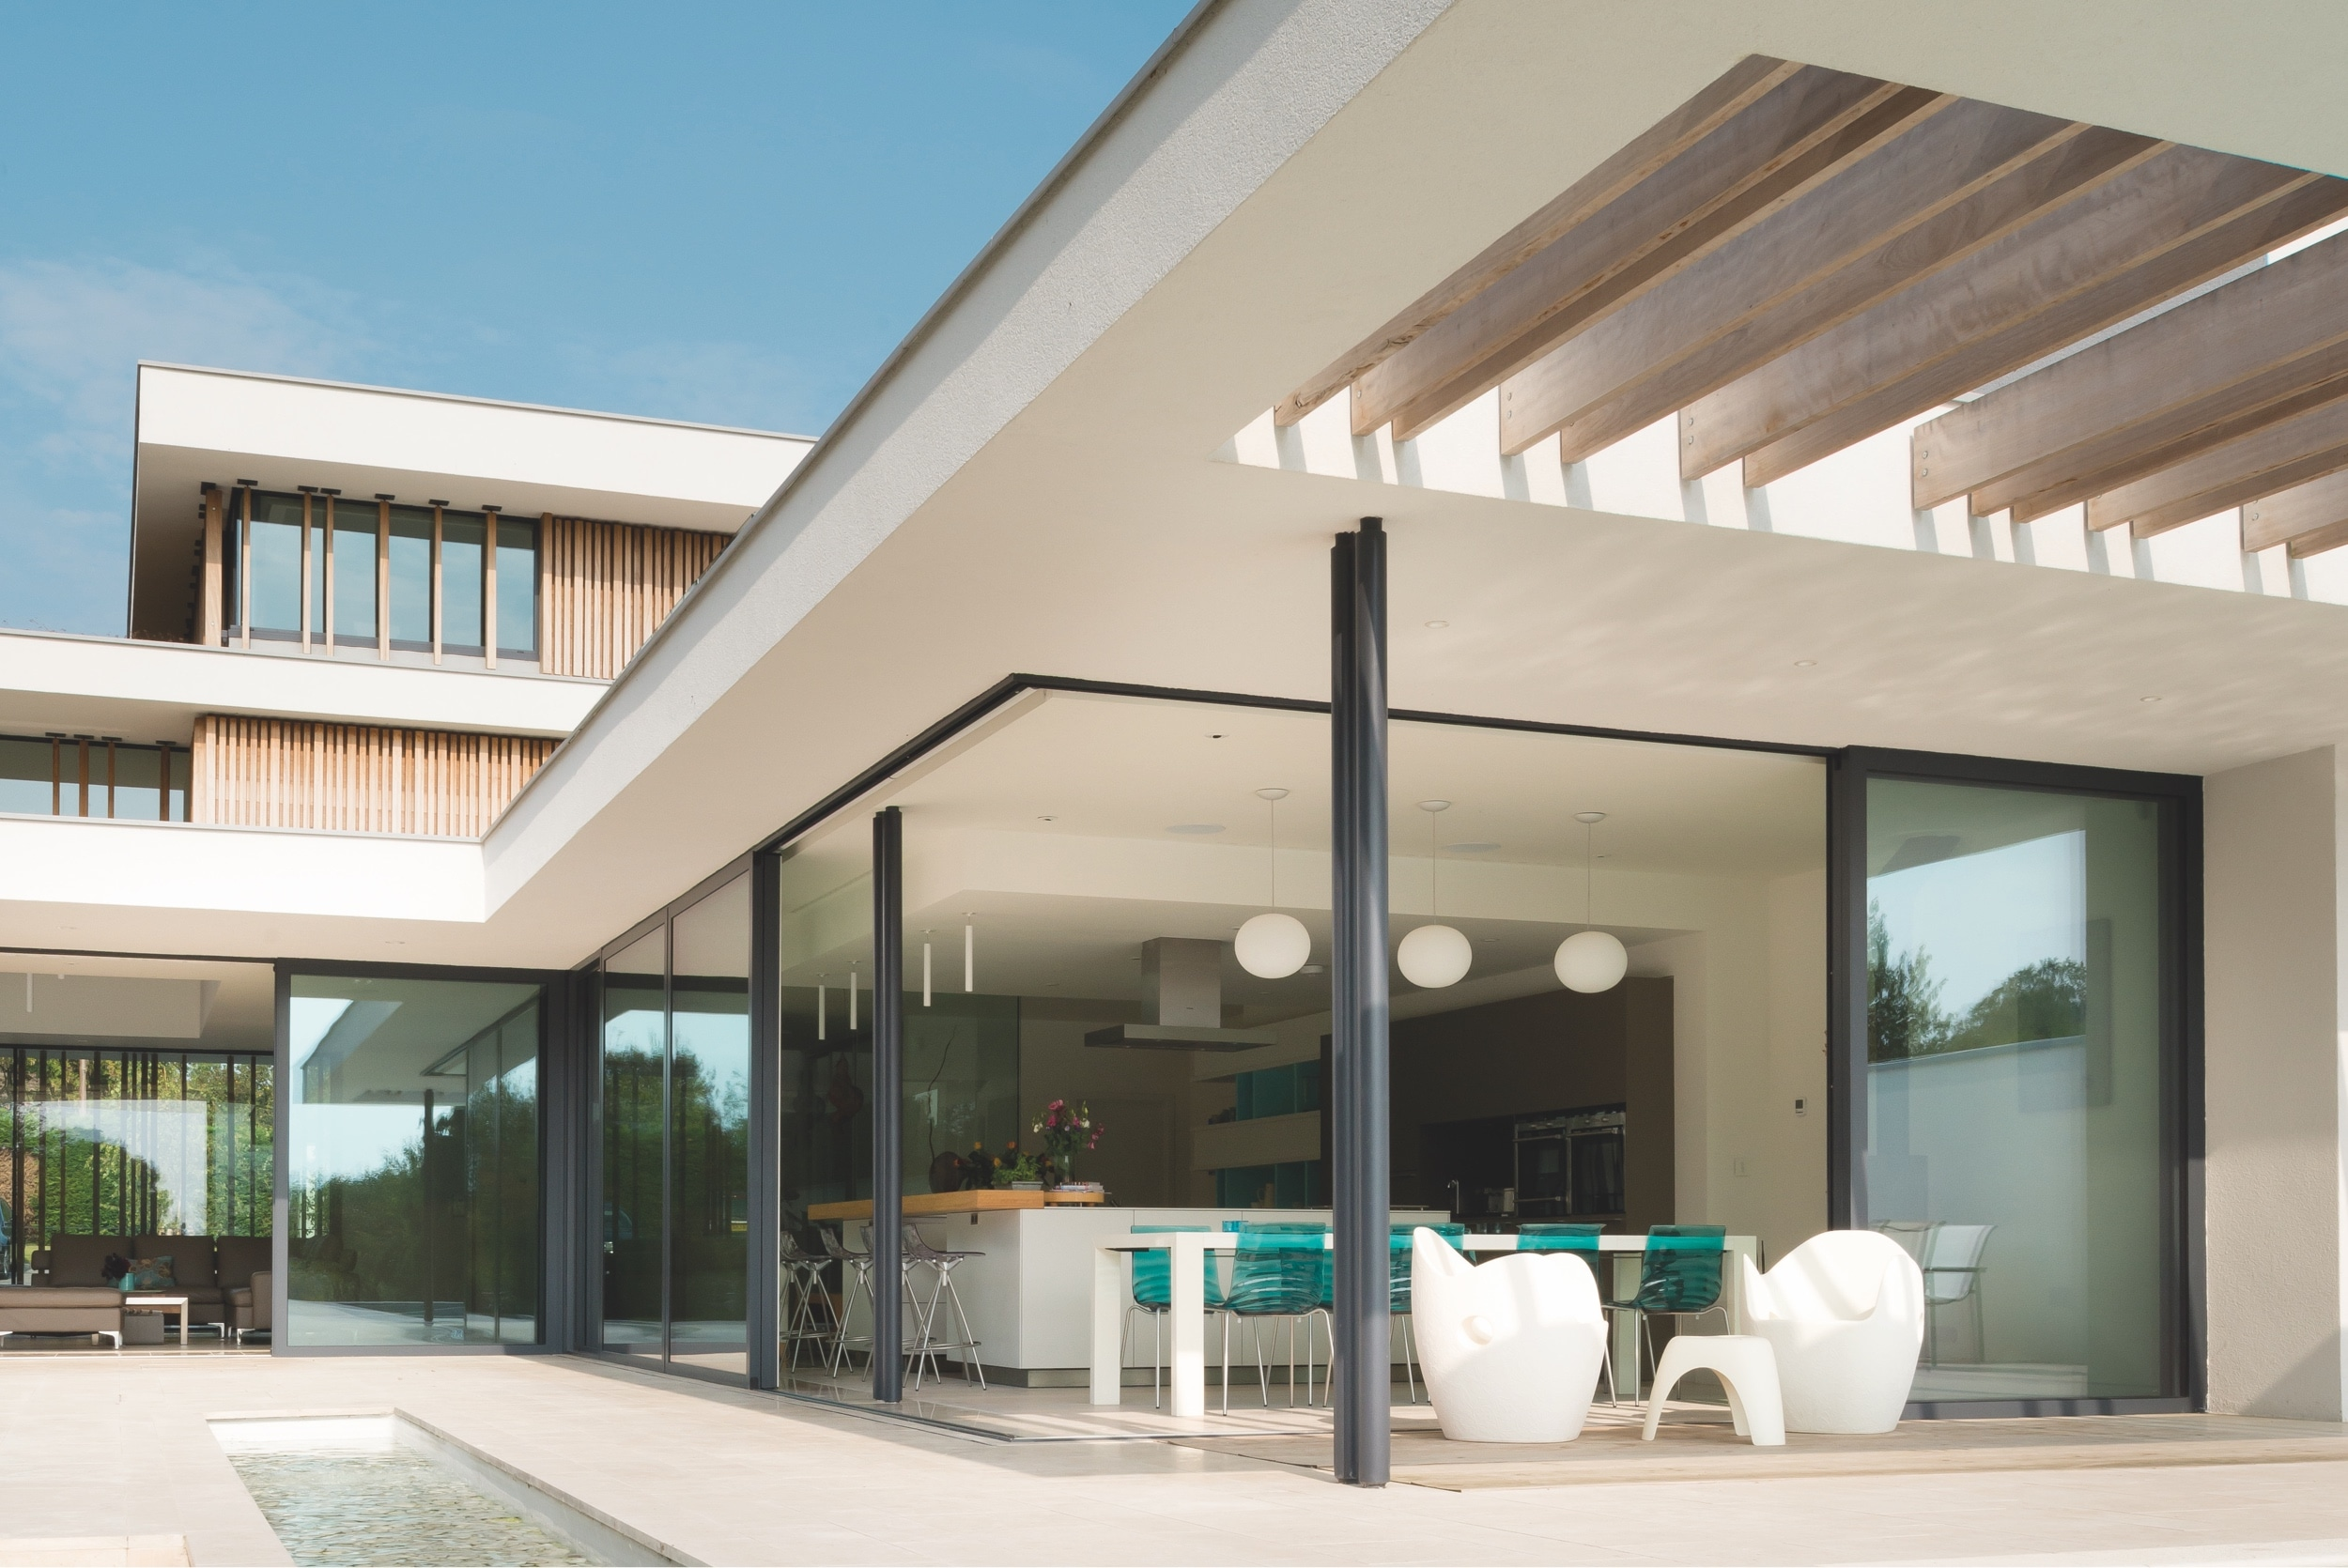 Modern architecture featuring the IDSystems Grand Slider II sliding doors